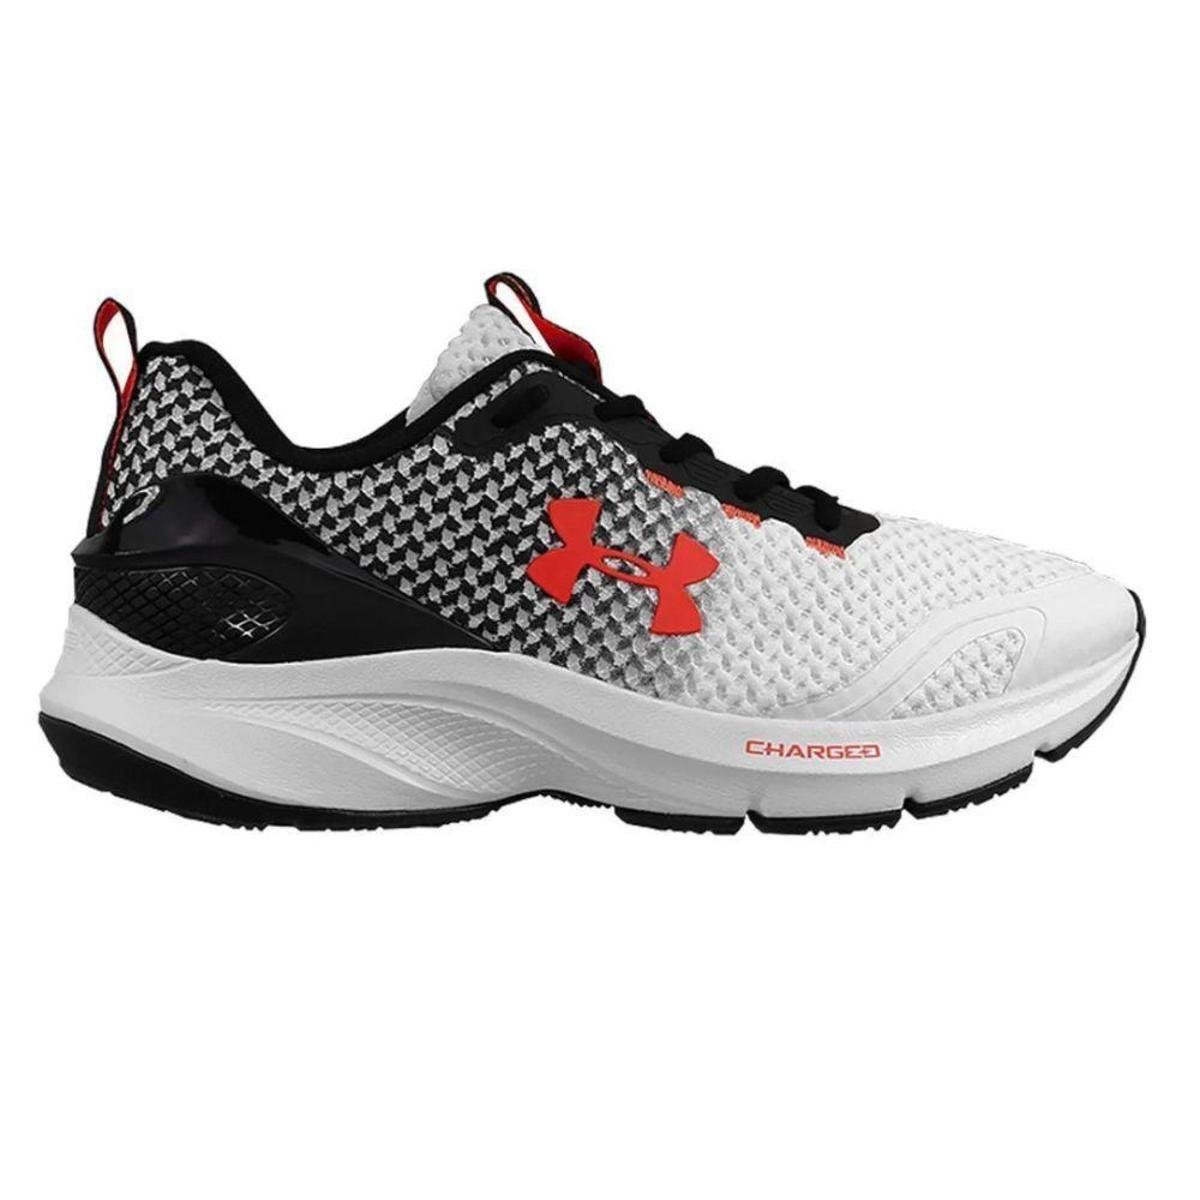 Tenis Under Armour Charged Prompt - Branco/Preto